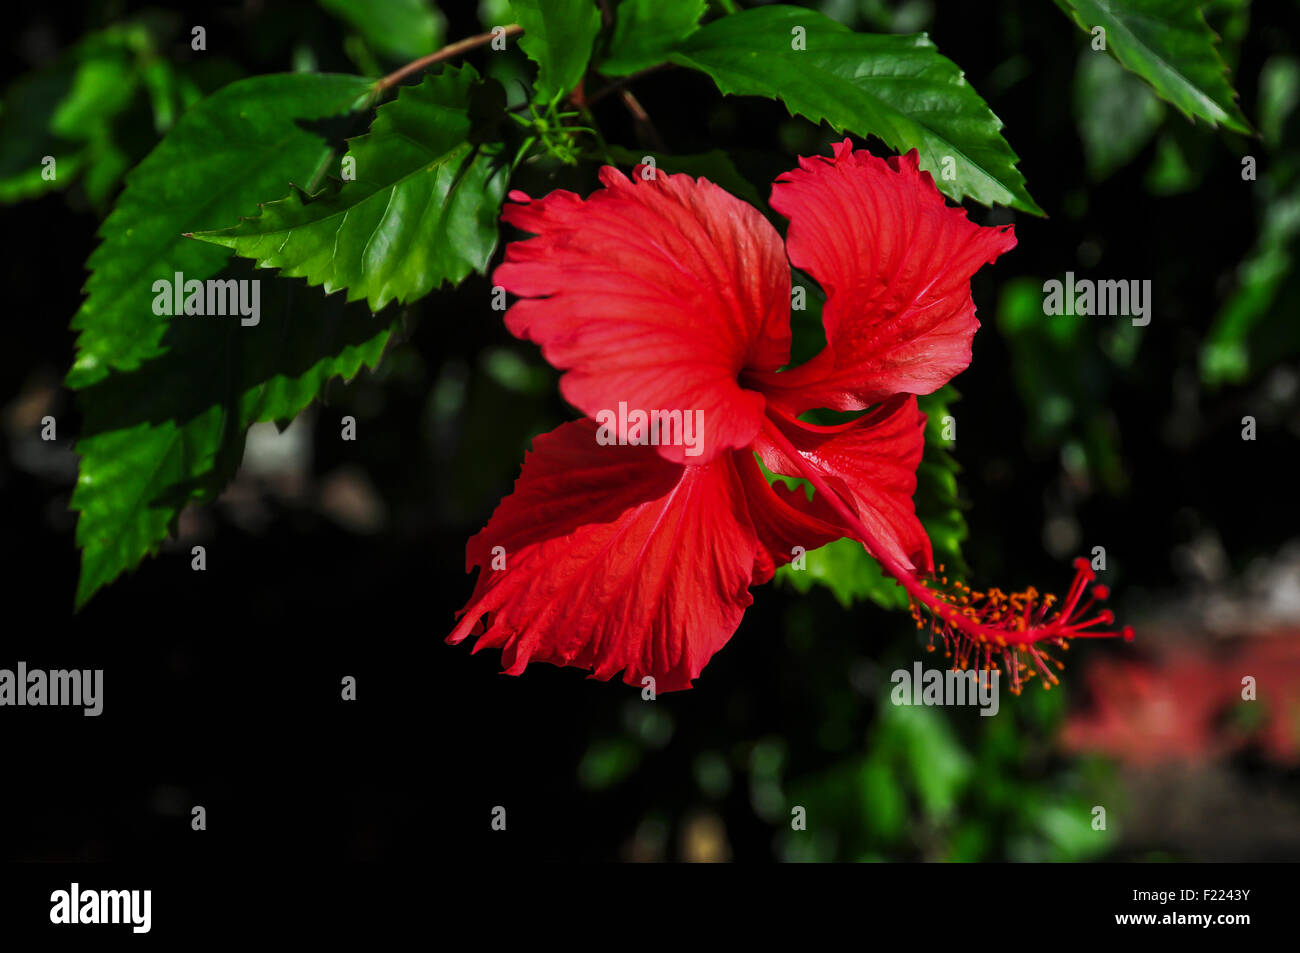 Red hibiscus flower on green and black background stock photo red hibiscus flower on green and black background izmirmasajfo